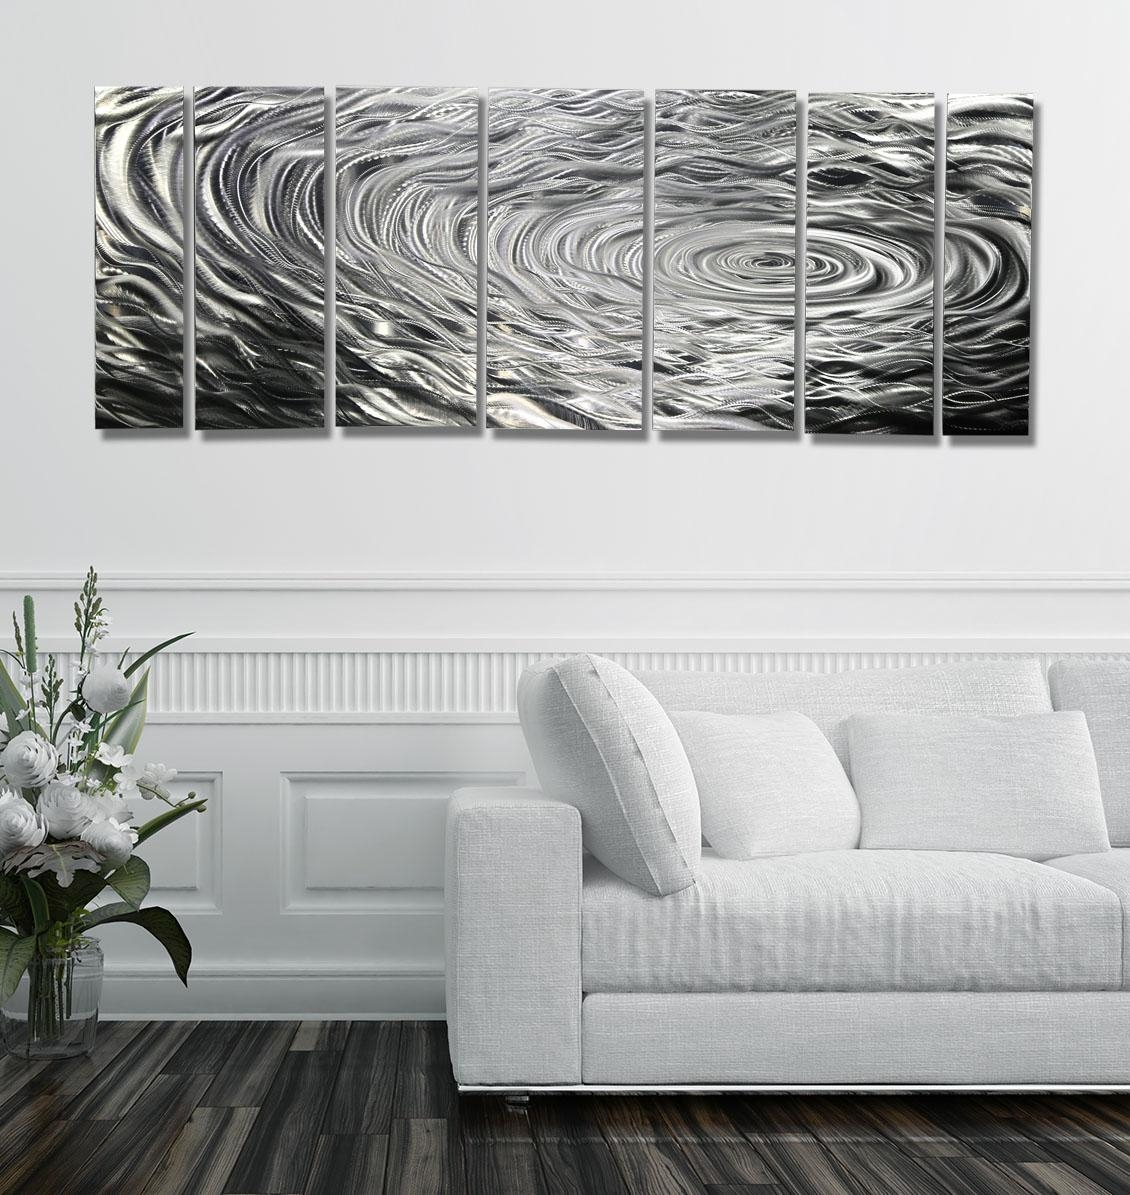 Modern Silver Abstract Metal Wall Art Home Decor – Ripple Effect Within Black Silver Wall Art (Image 12 of 20)